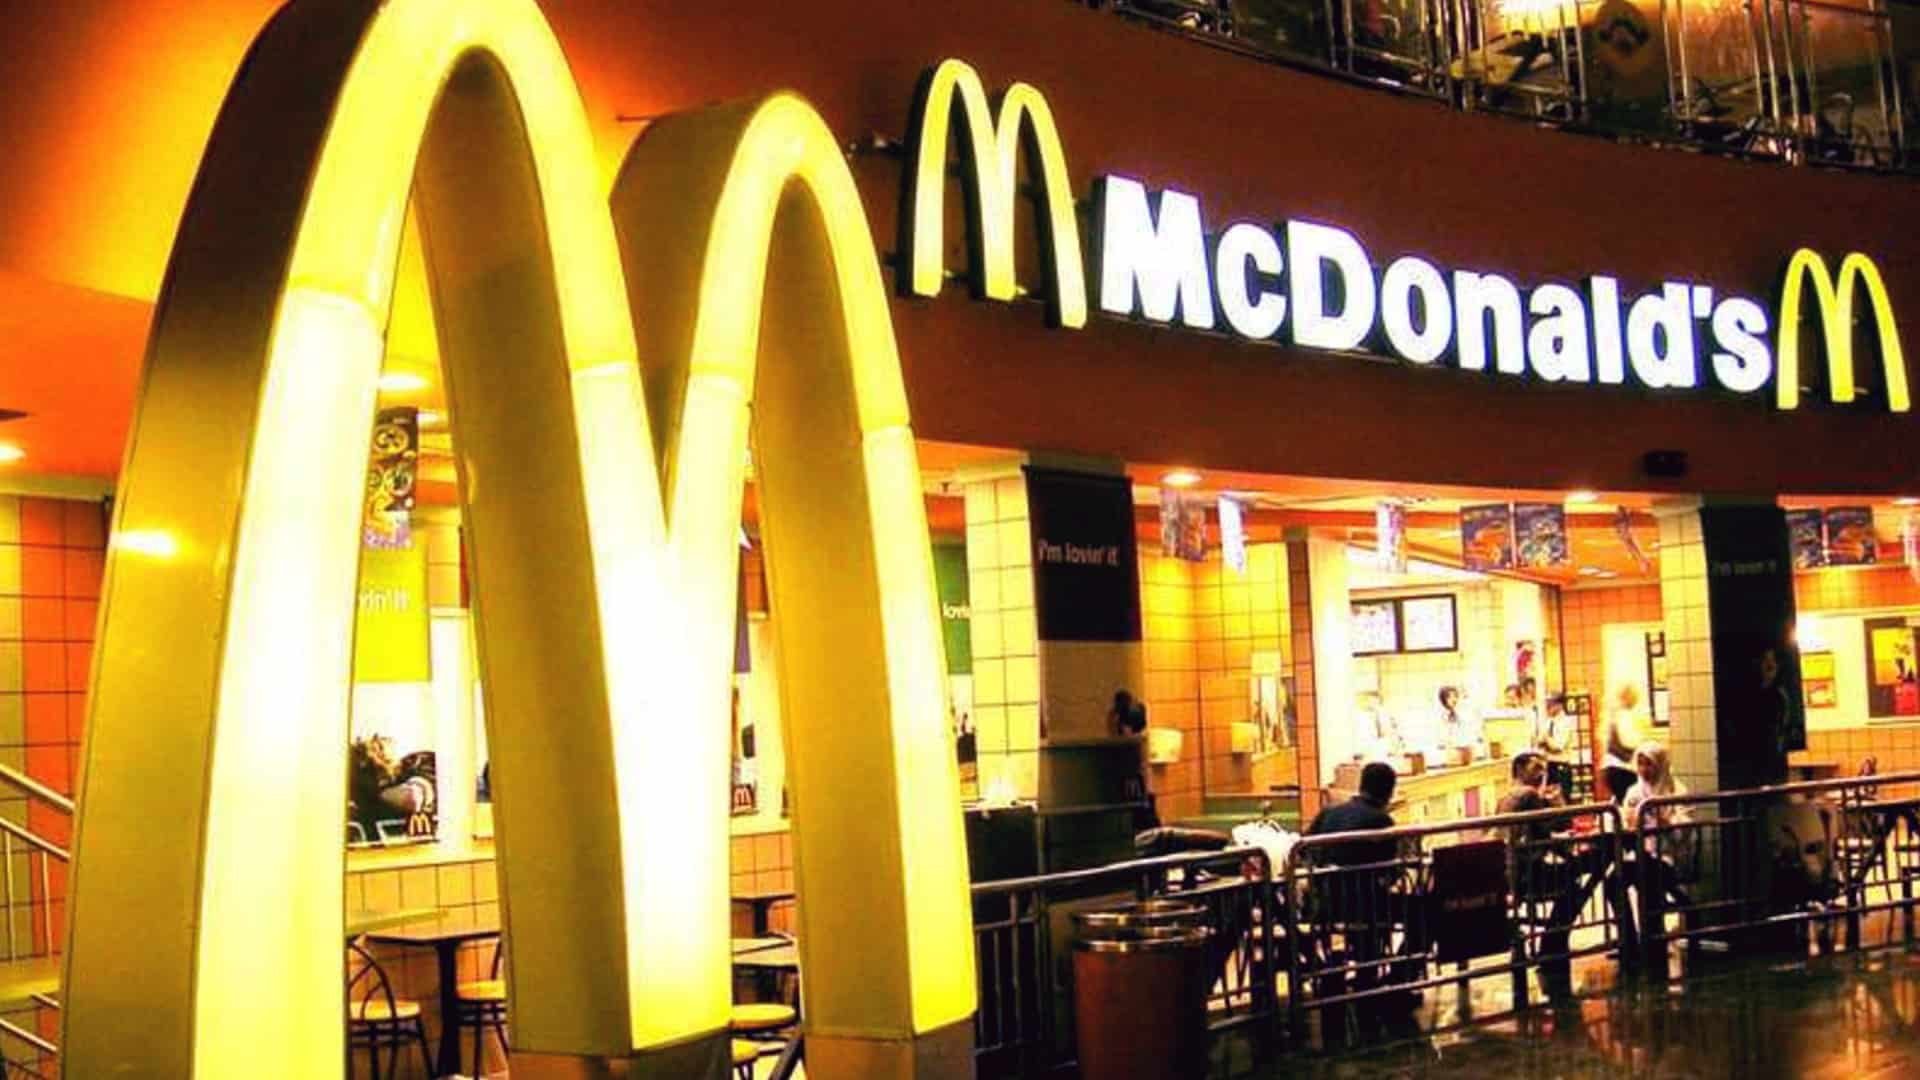 Westlife Development to invest around Rs 1,000 cr, to launch 200 McDonald's outlets in next 5 years